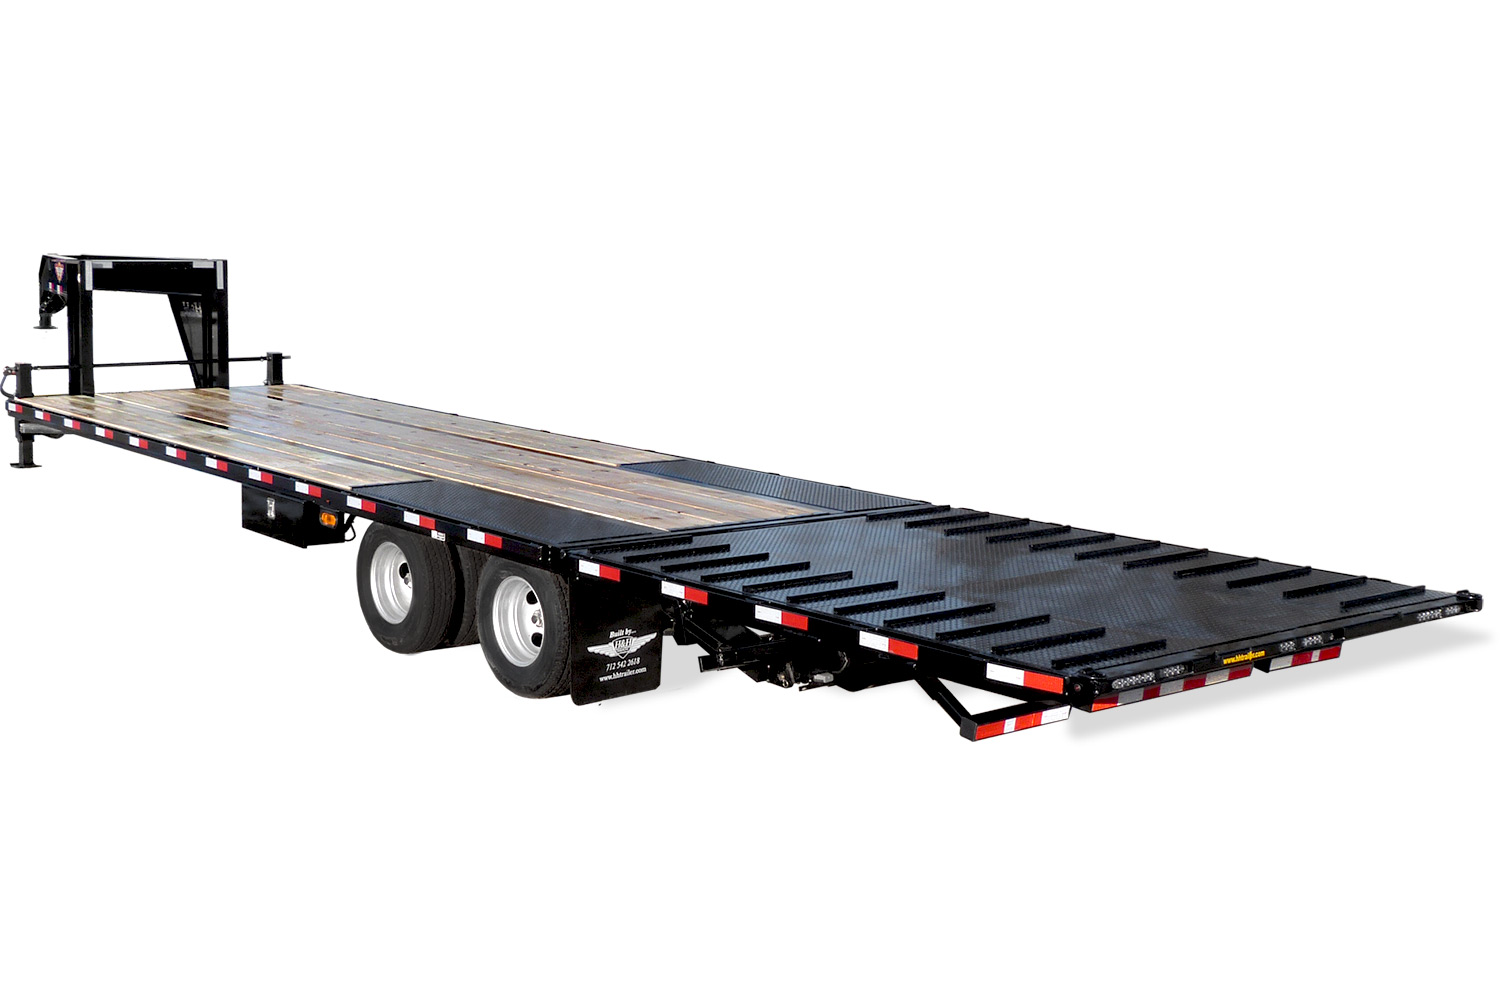 2020 H and H Trailer 28+5 19LB 20K GNLP DECKOVER SUPER DLX